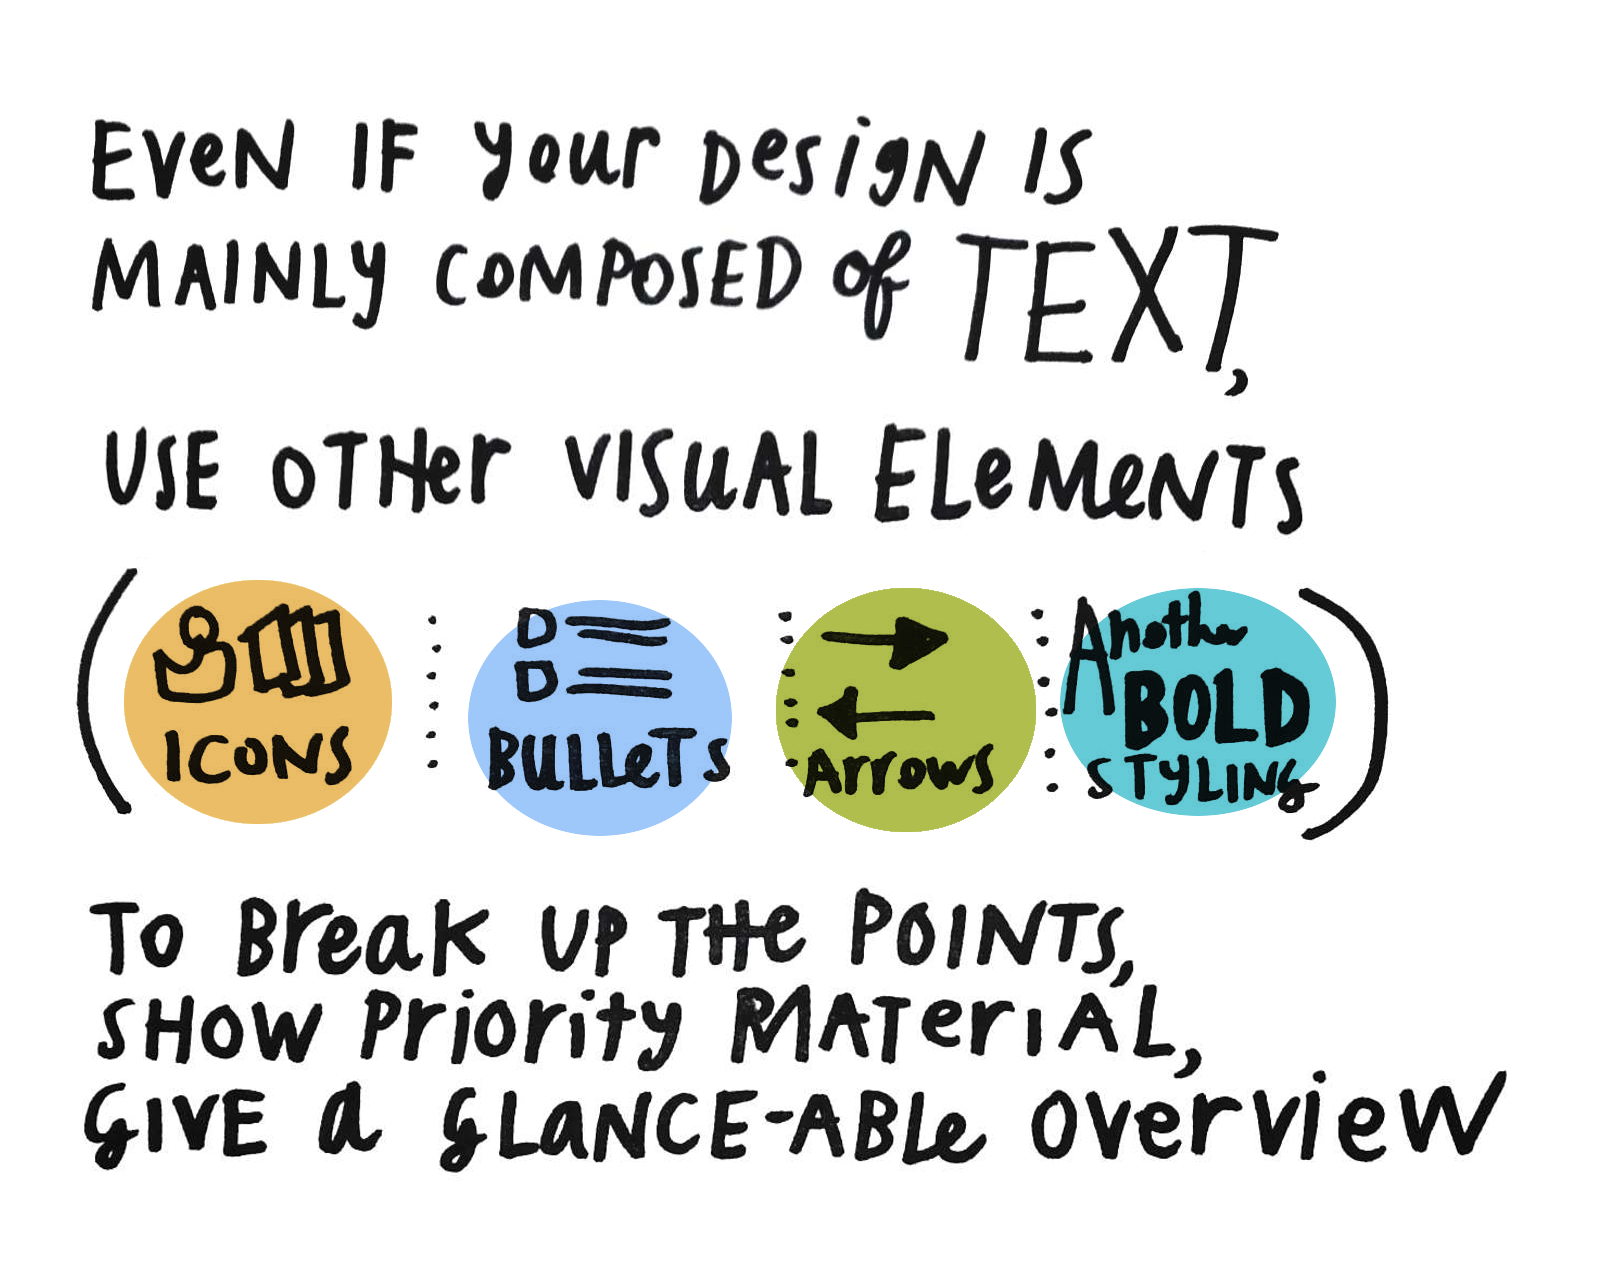 Visual Law Meetup takeaways - break up big blocks of text with other styling